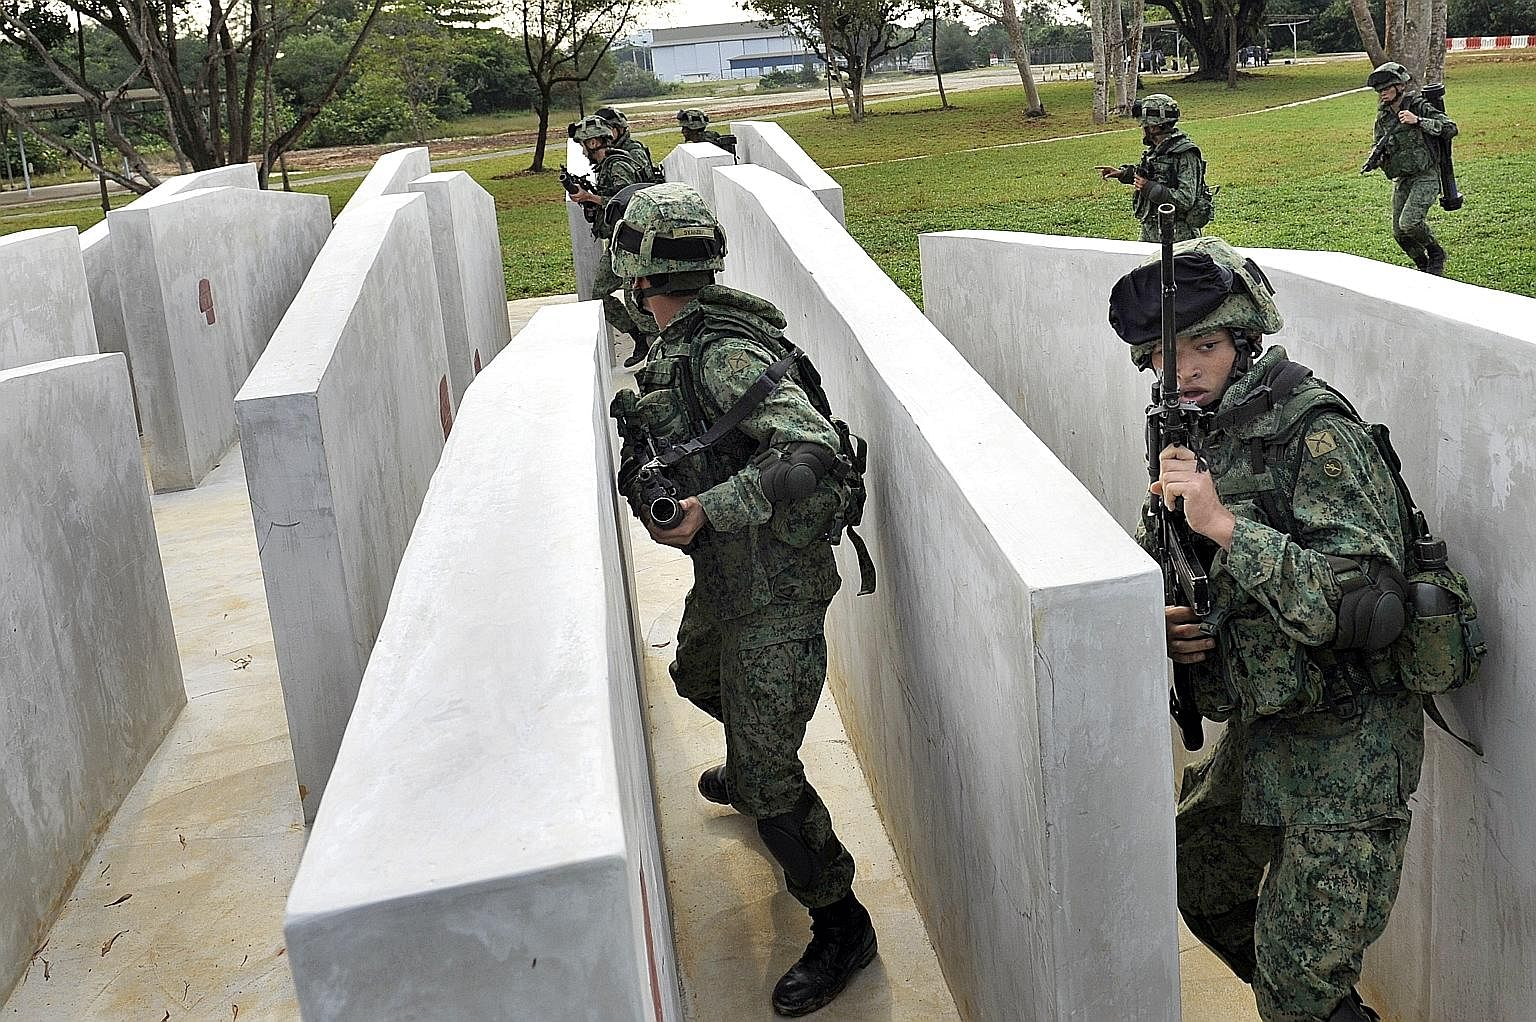 National servicemen during an obstacle-course training session. They will soon be trained in cyber-security tactics as well.